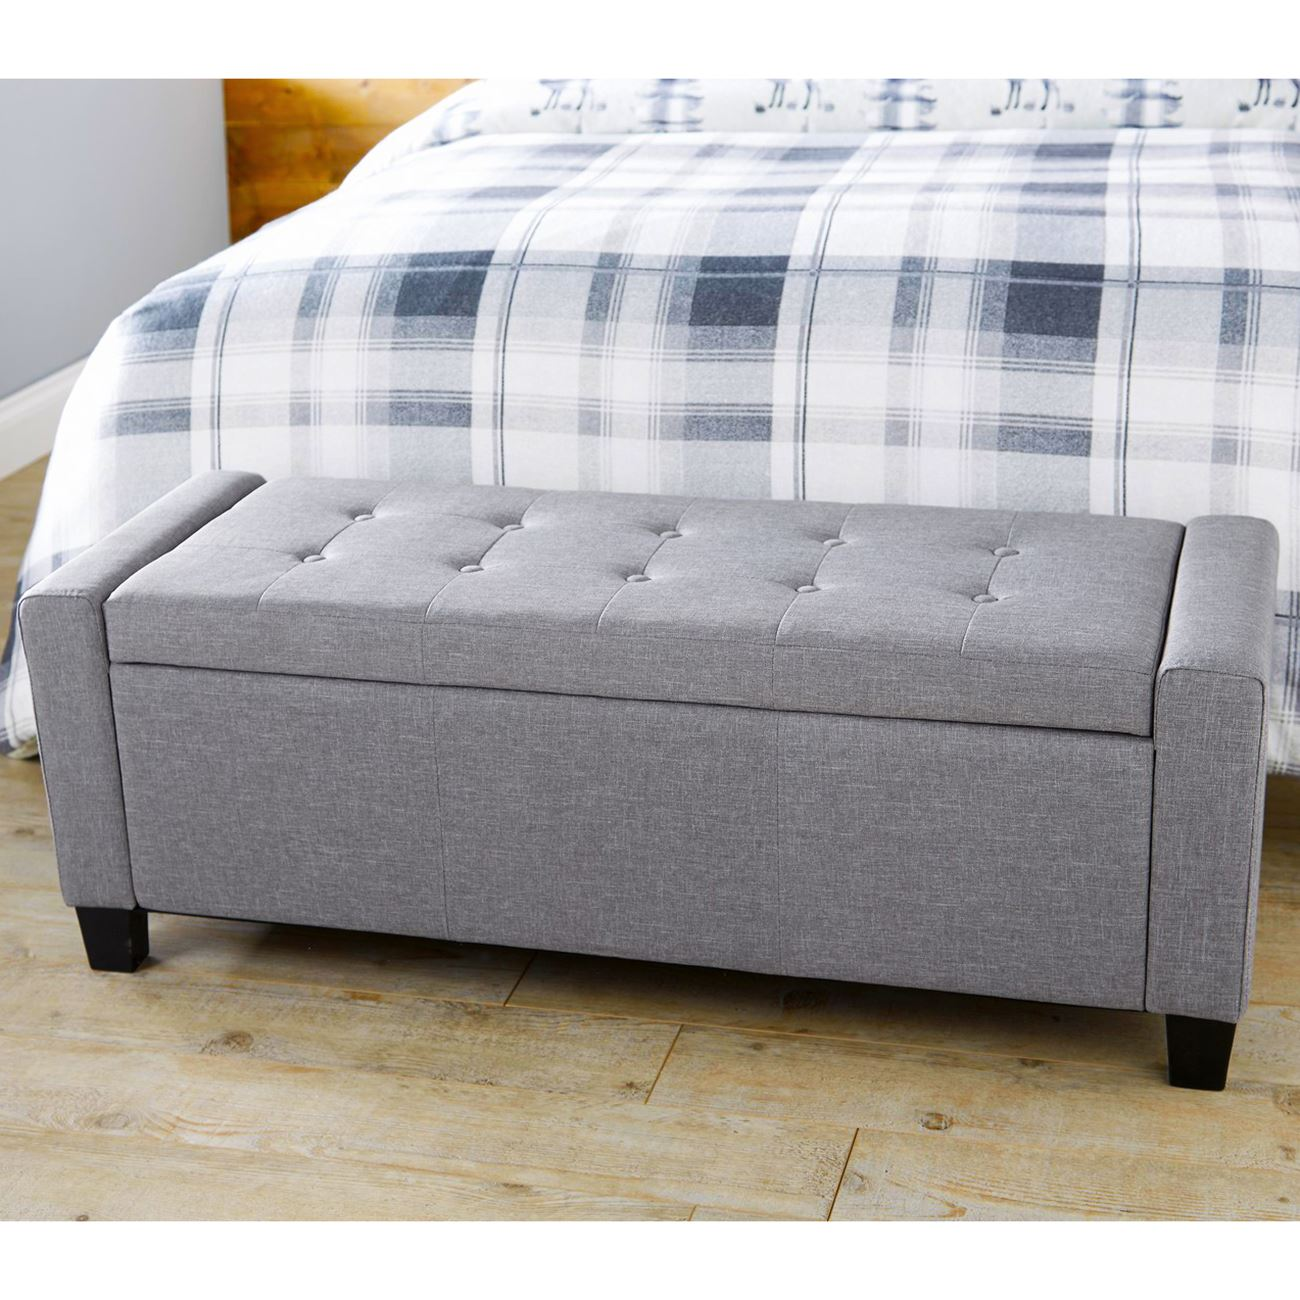 Details About Verona Ottoman Storage Blanket Box Hopsack Fabric Seat Bench Foot Stool Silver